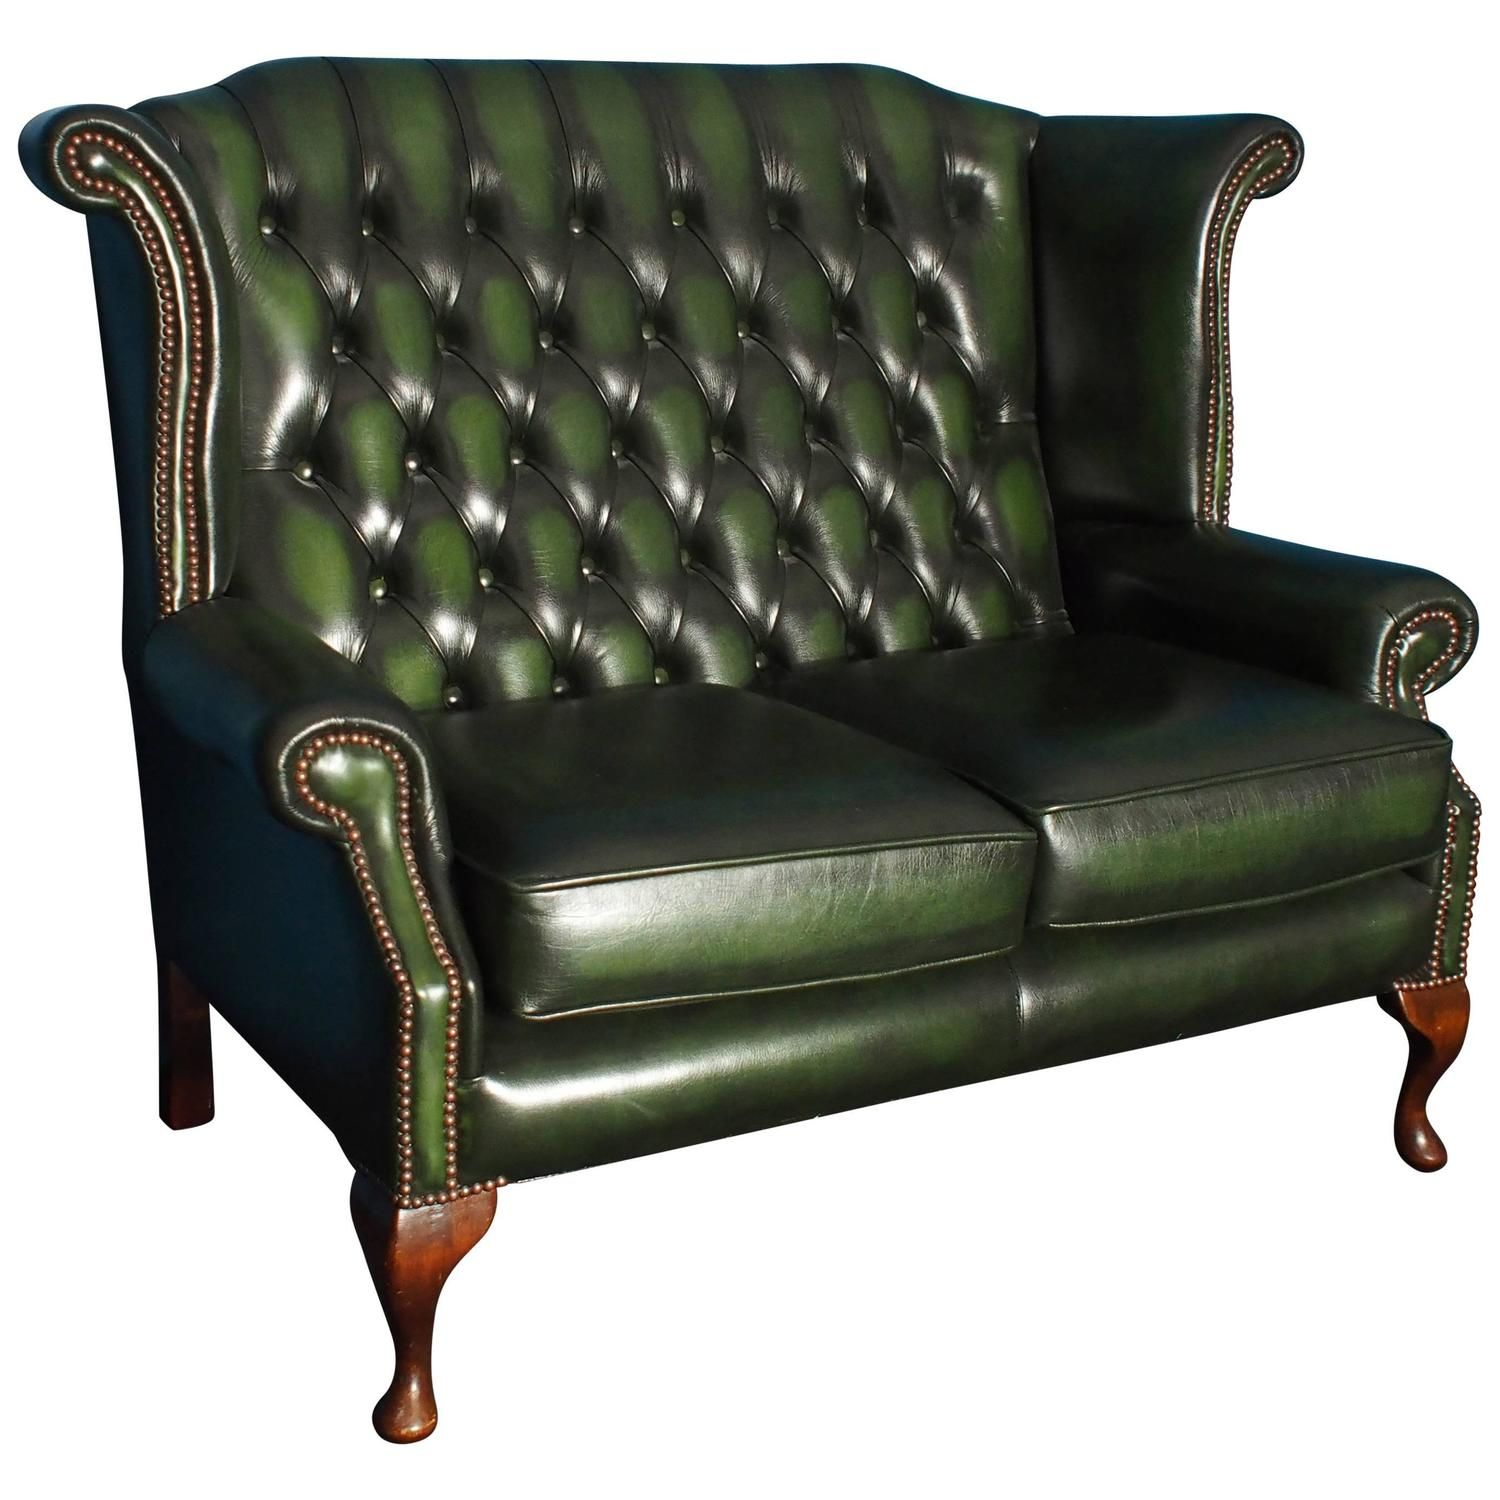 Antique Leather Three Seat Chesterfield Sofa